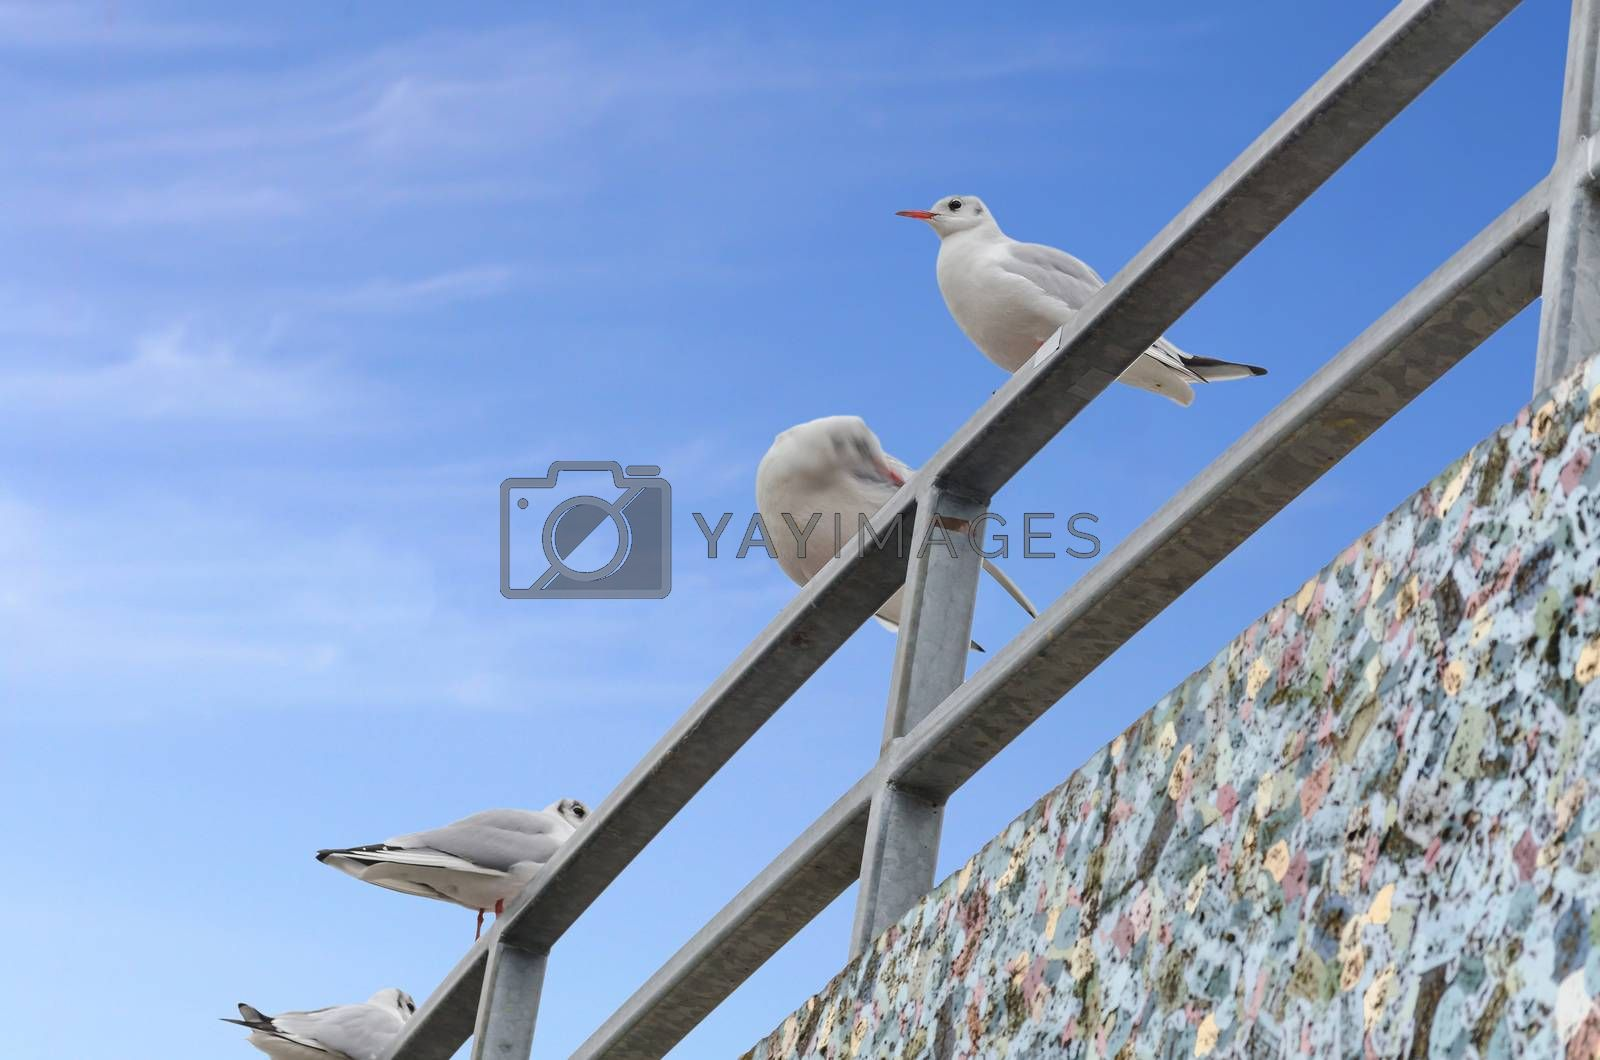 Four seagulls on railing on background of blue sky.